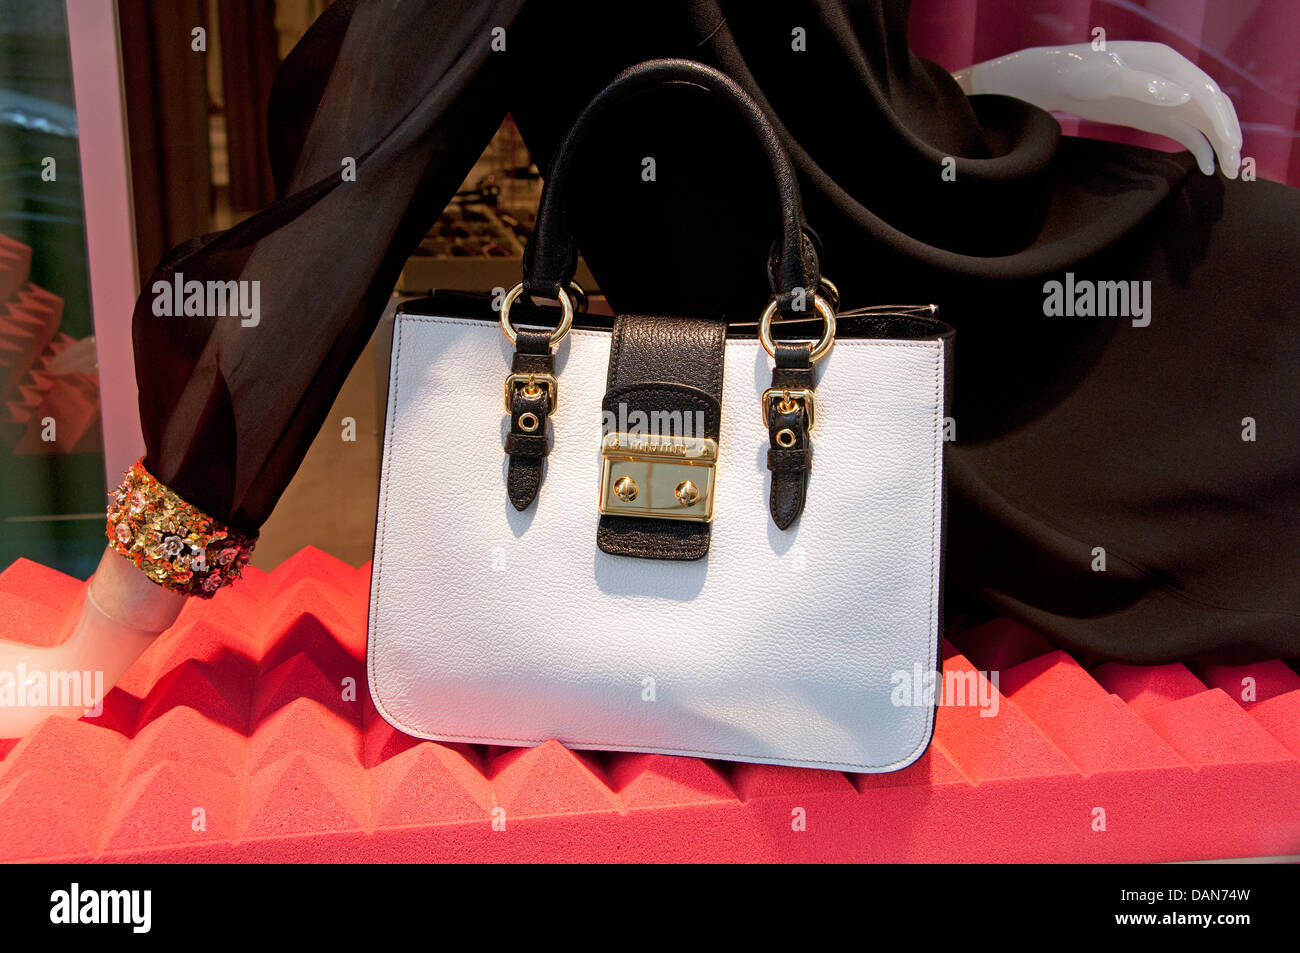 Miu Bag Fotos Alamy Immaginiamp; Stock 2EWD9IeHY